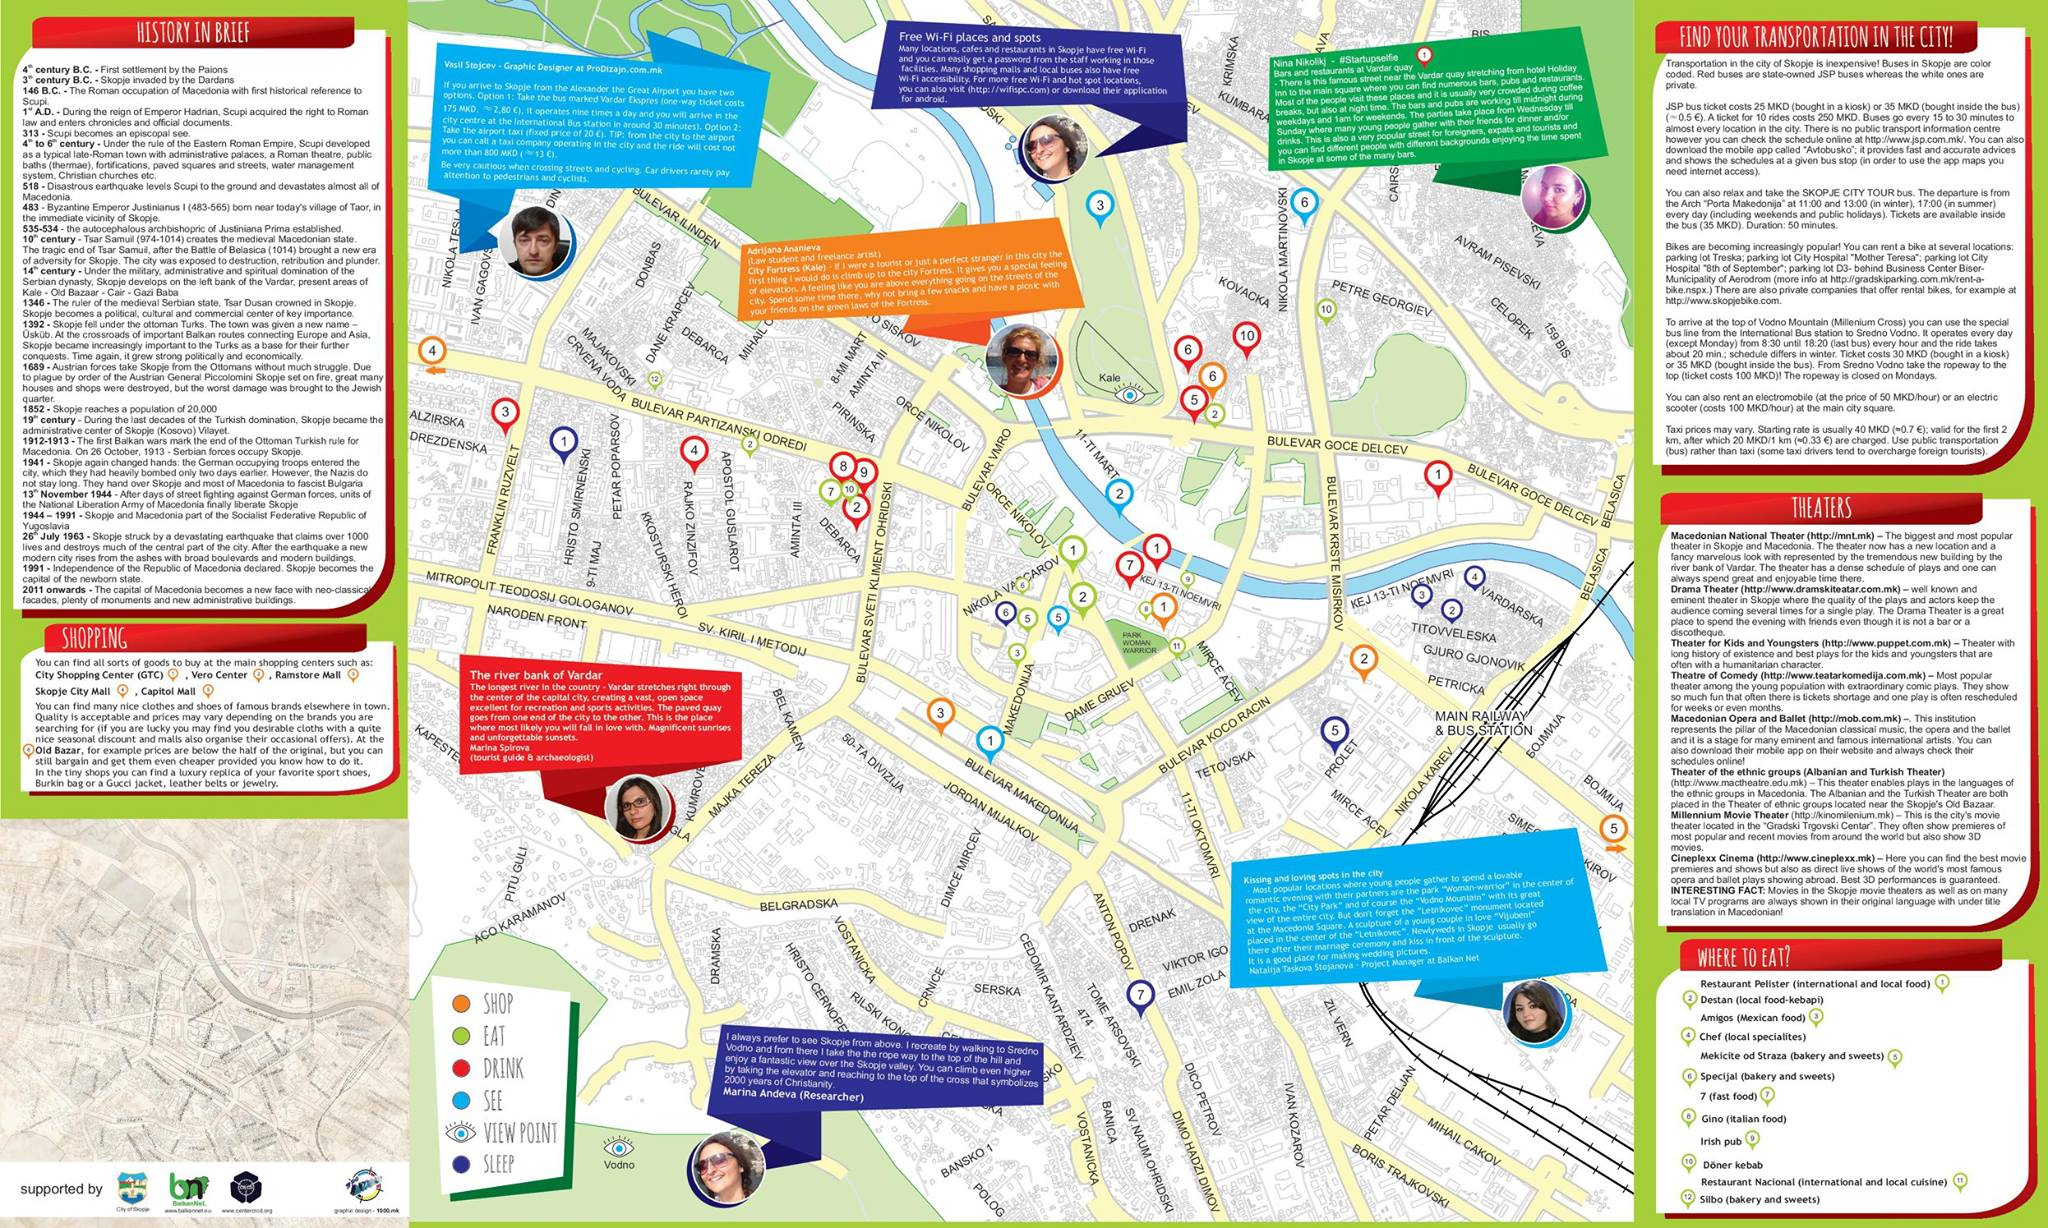 FREE MAP OF SKOPJE FOR YOUNG PEOPLE Center For Research Cross - Kosovo map hd pdf